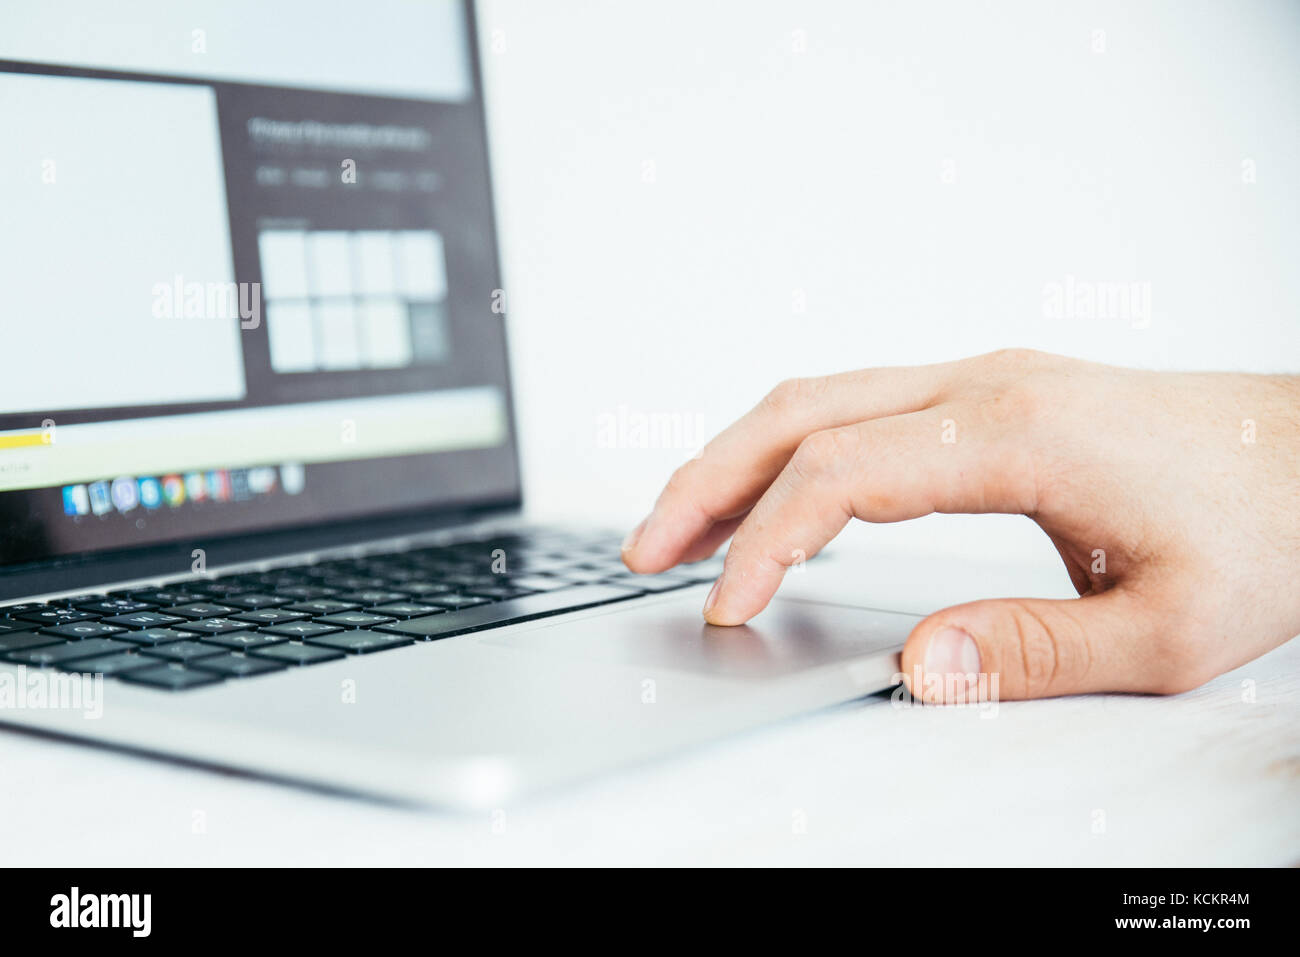 hand using touchpad on laptop - Stock Image